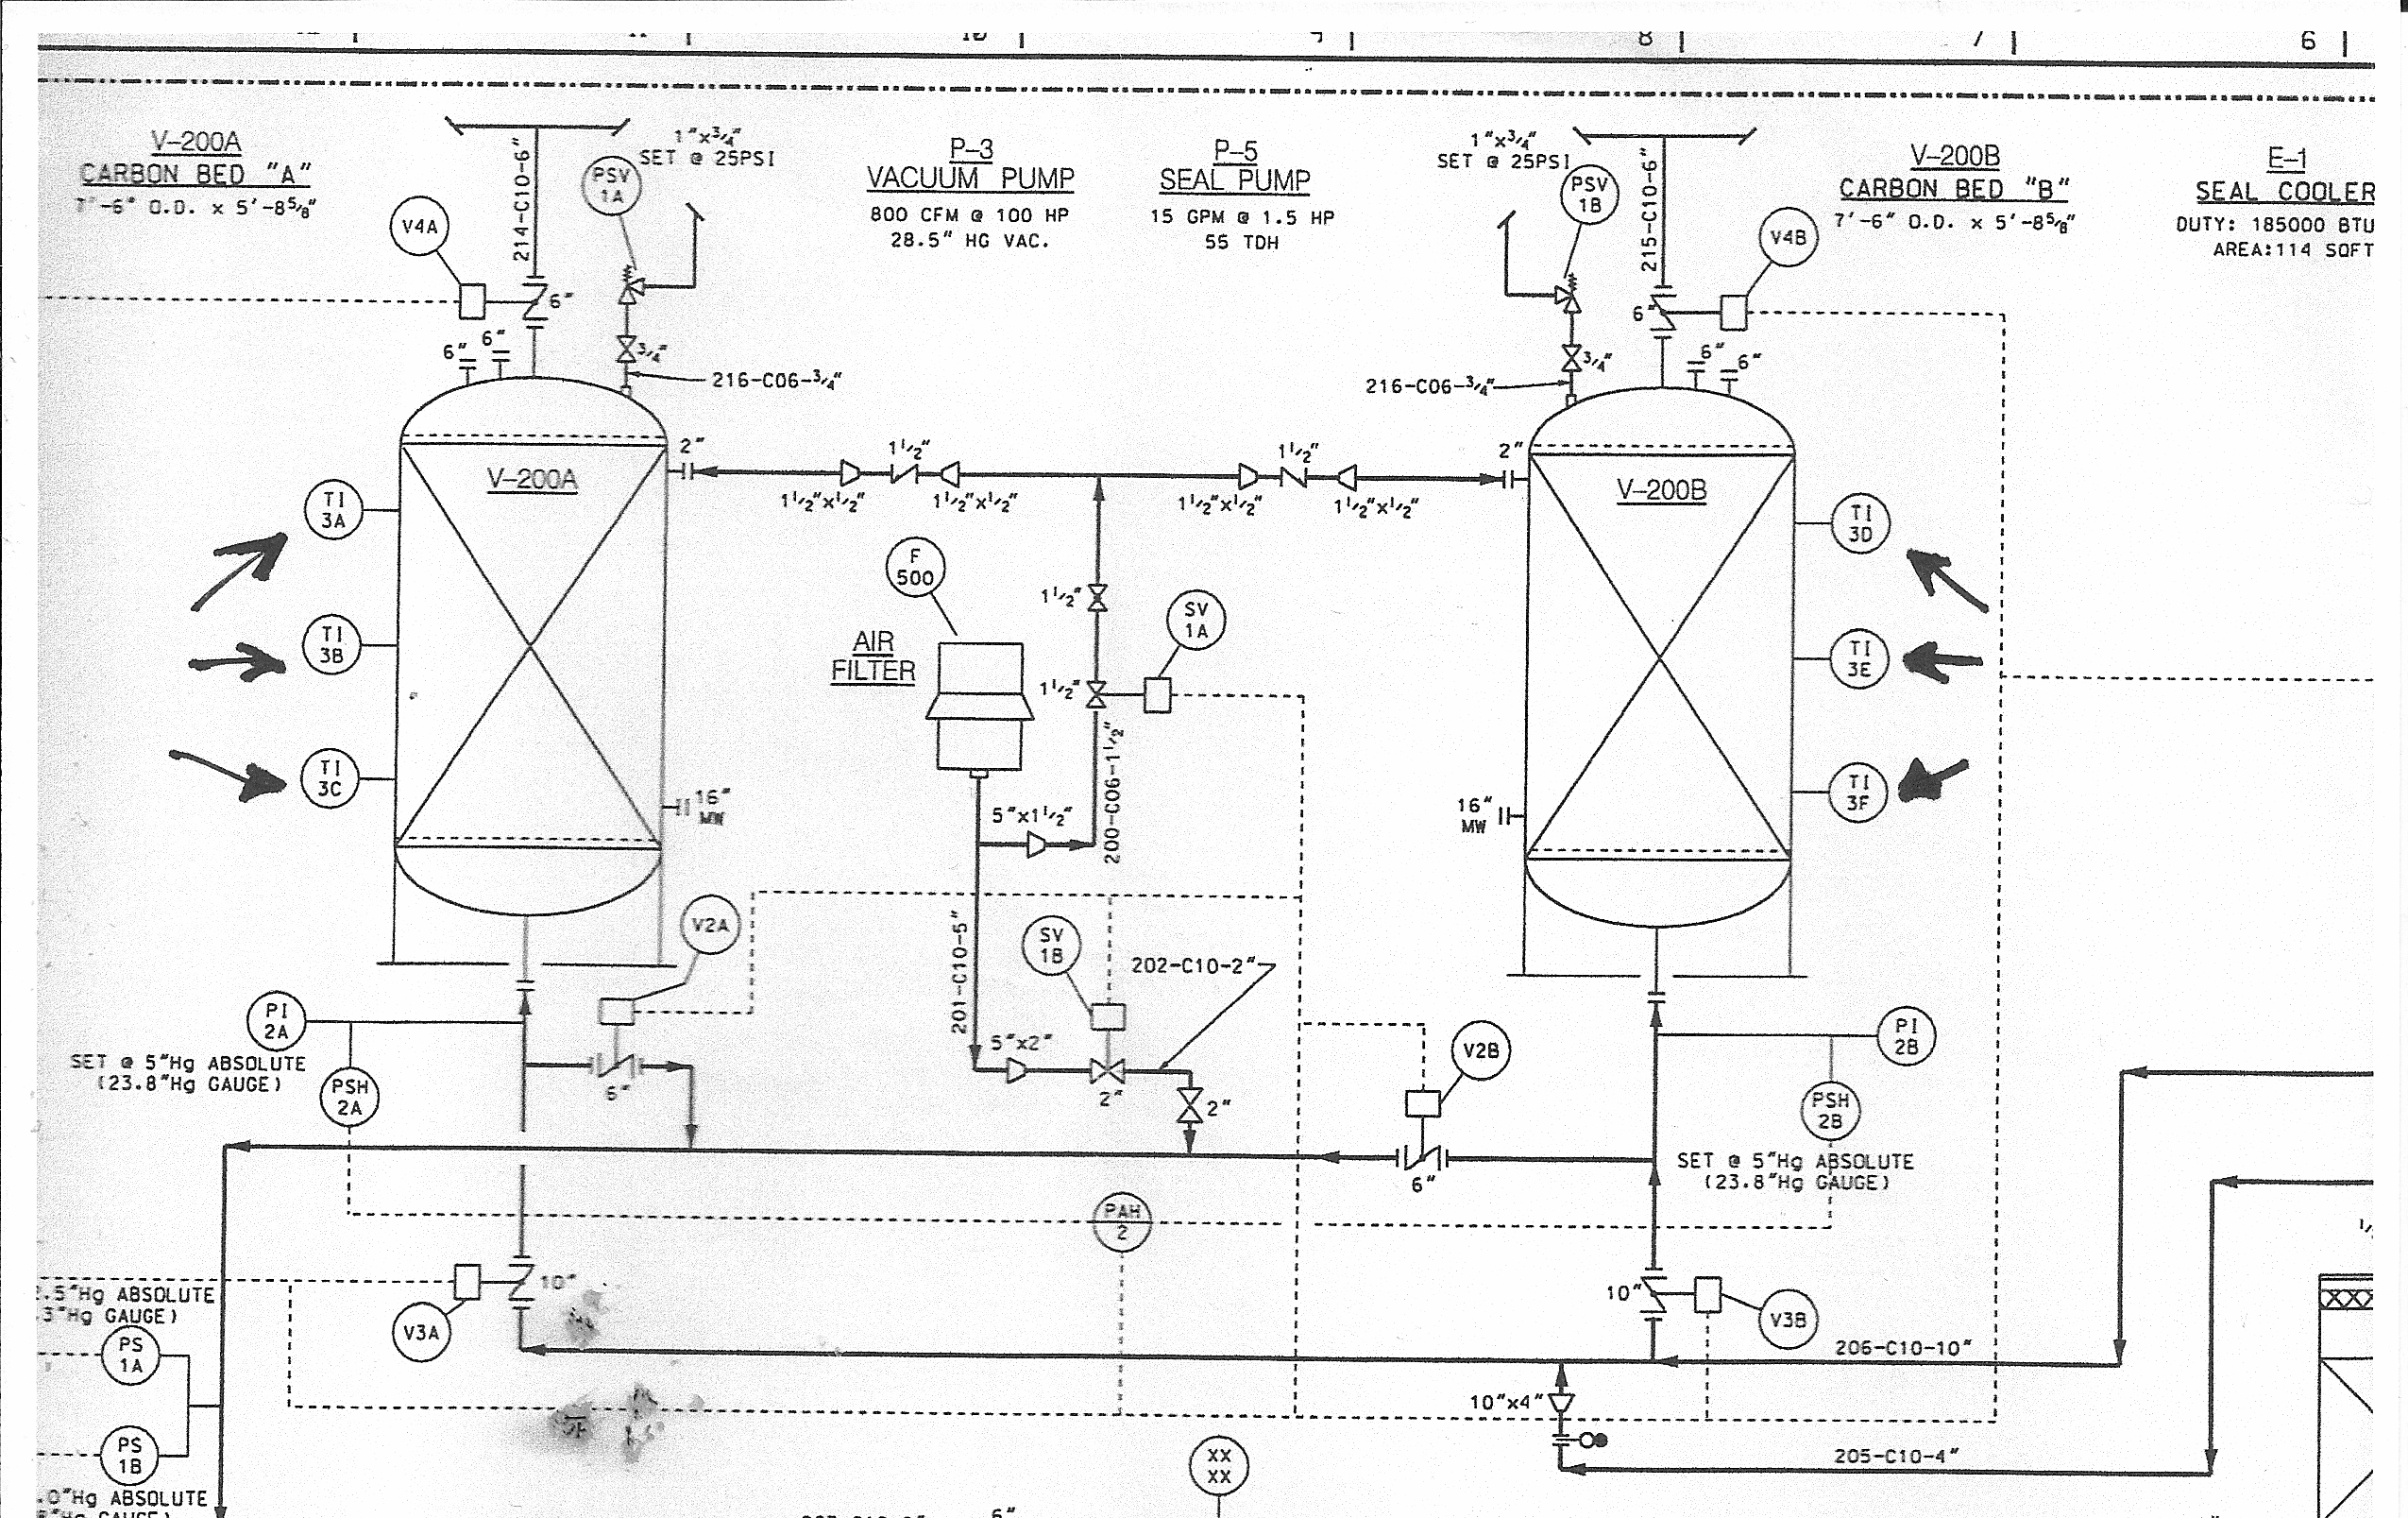 Piping And Instrumentation Diagram Key